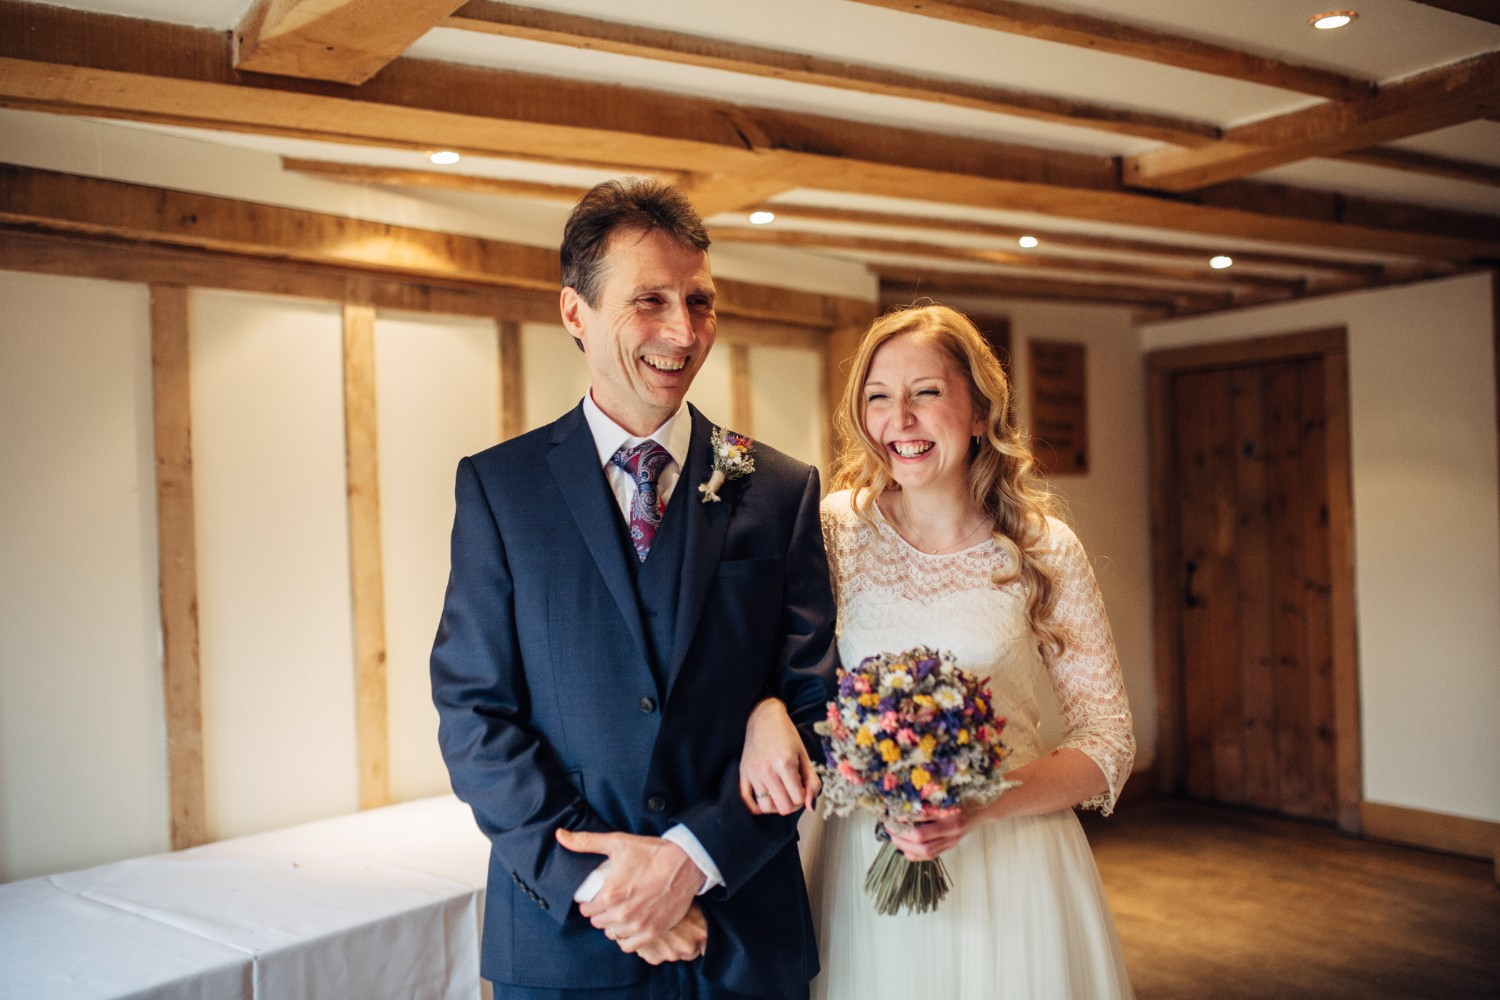 Liz + Dave Tewin Bury Farm Winter Wedding Naomijanephotography121.jpg